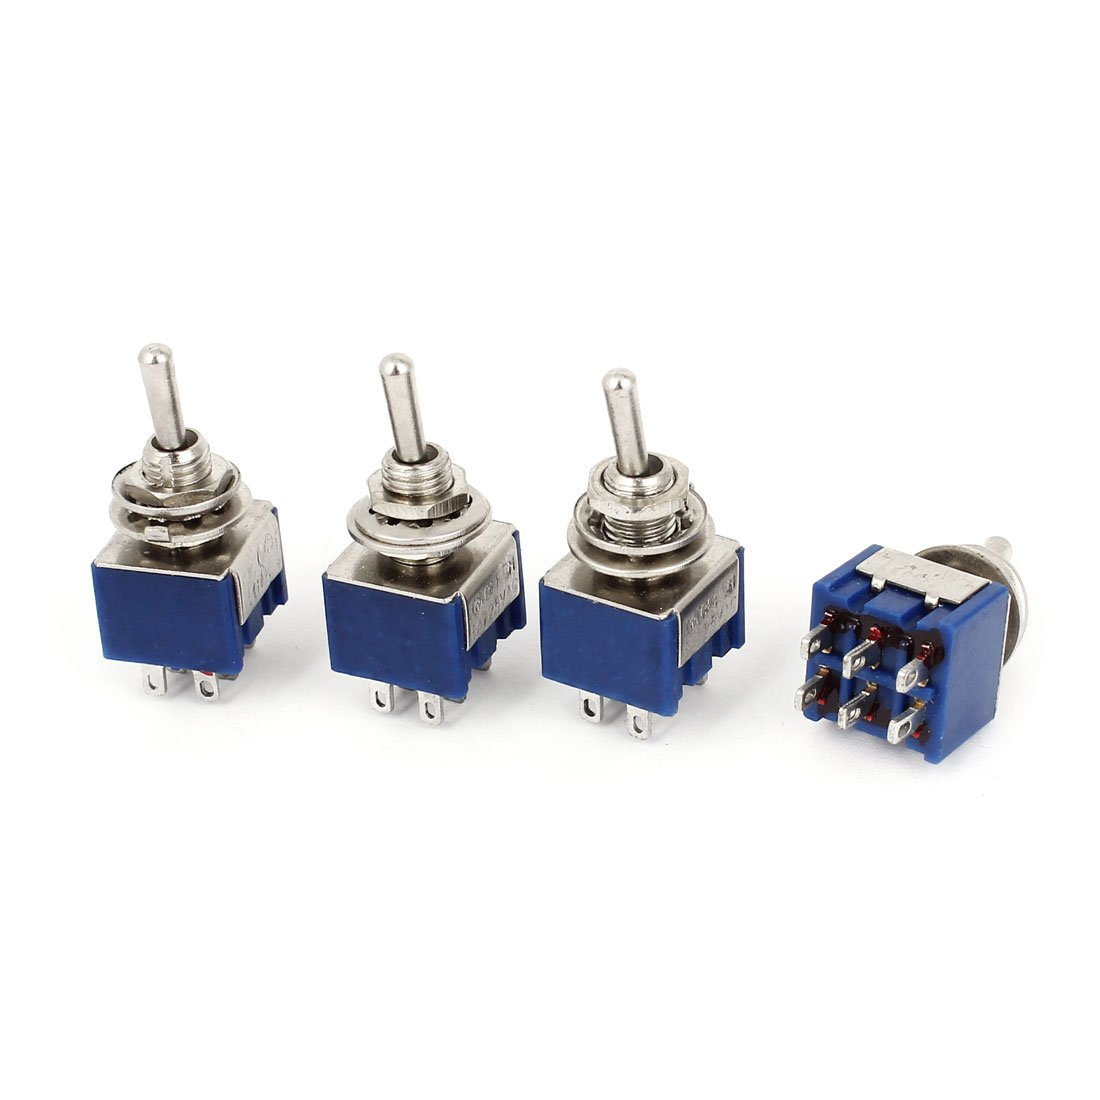 Uxcell a14103100ux0366 Toggle Switch, AC 125V 6 Amp, DPST 3 Position ON/OFF/ON Self Locking, 4 Piece